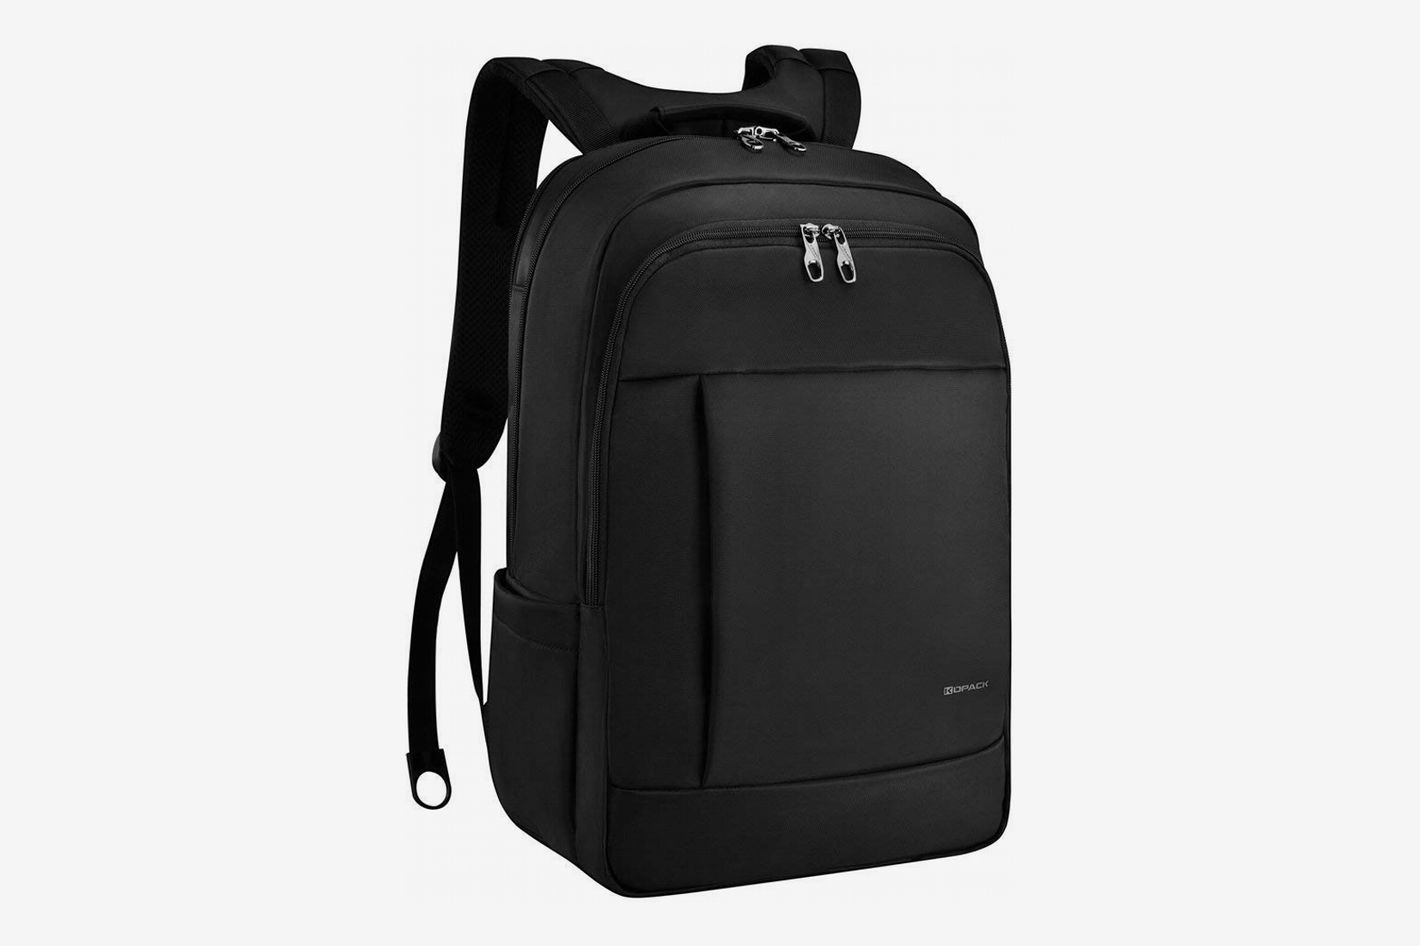 ef96c7807d7c Kopack Deluxe Black Waterproof Laptop Backpack